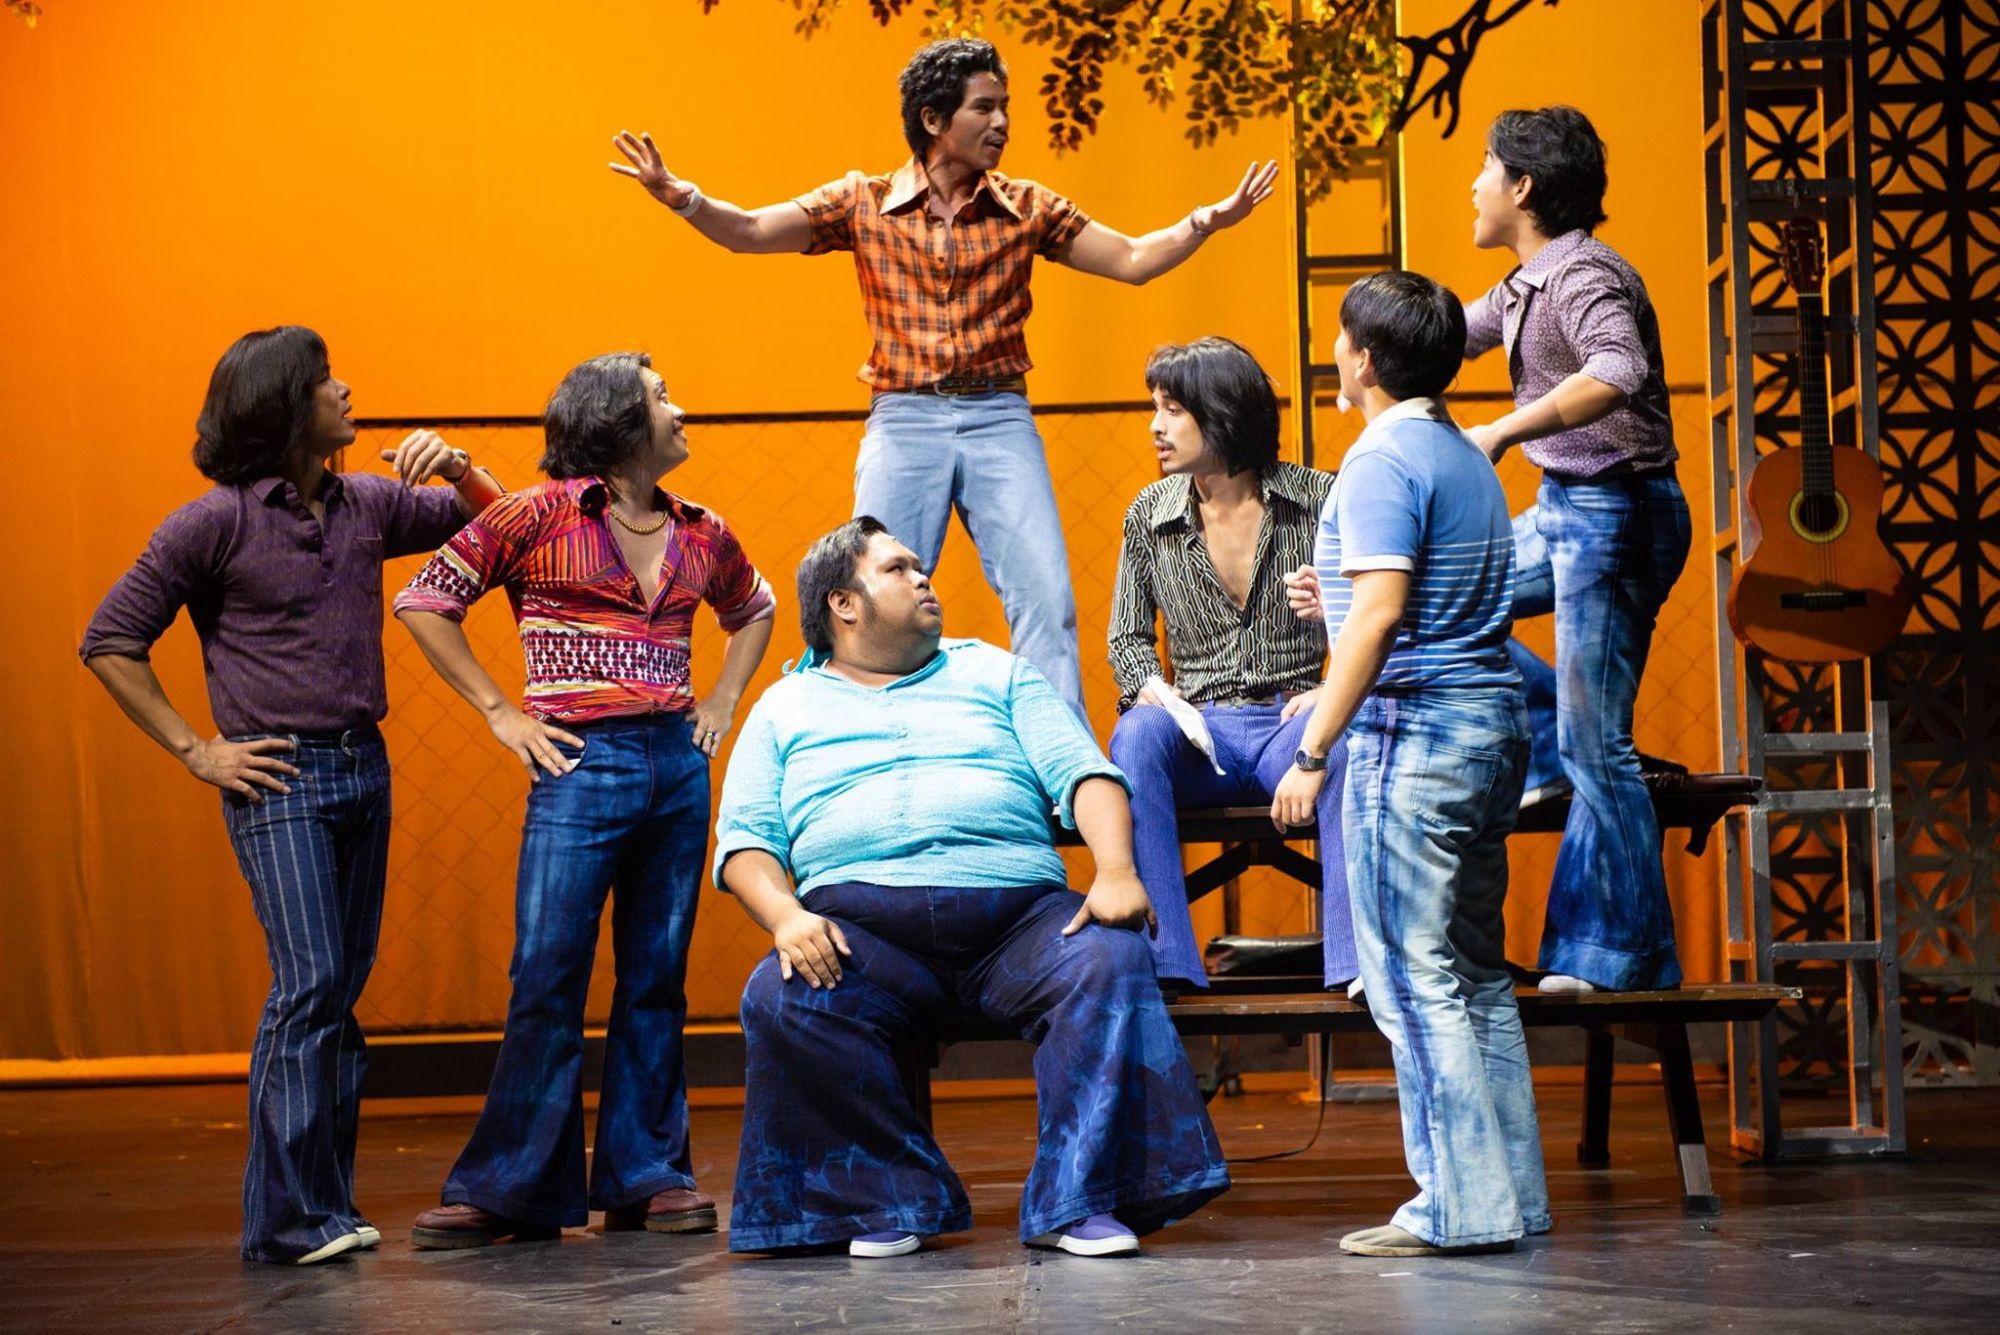 The Music Of The APO Hiking Society Brought To Life On Stage